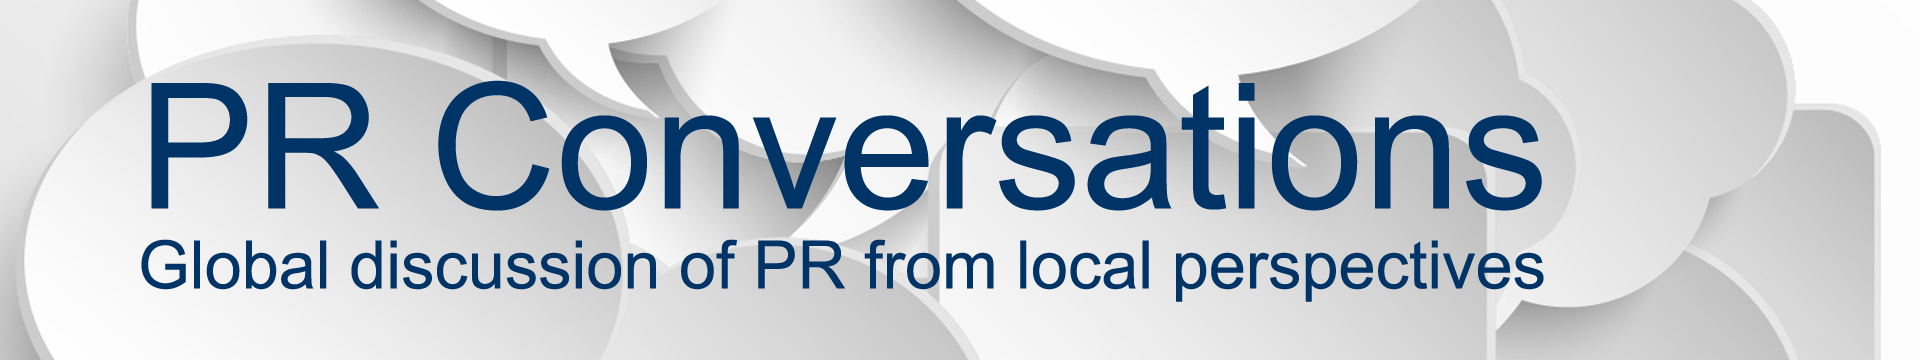 PR Conversations – Global discussion of PR from local